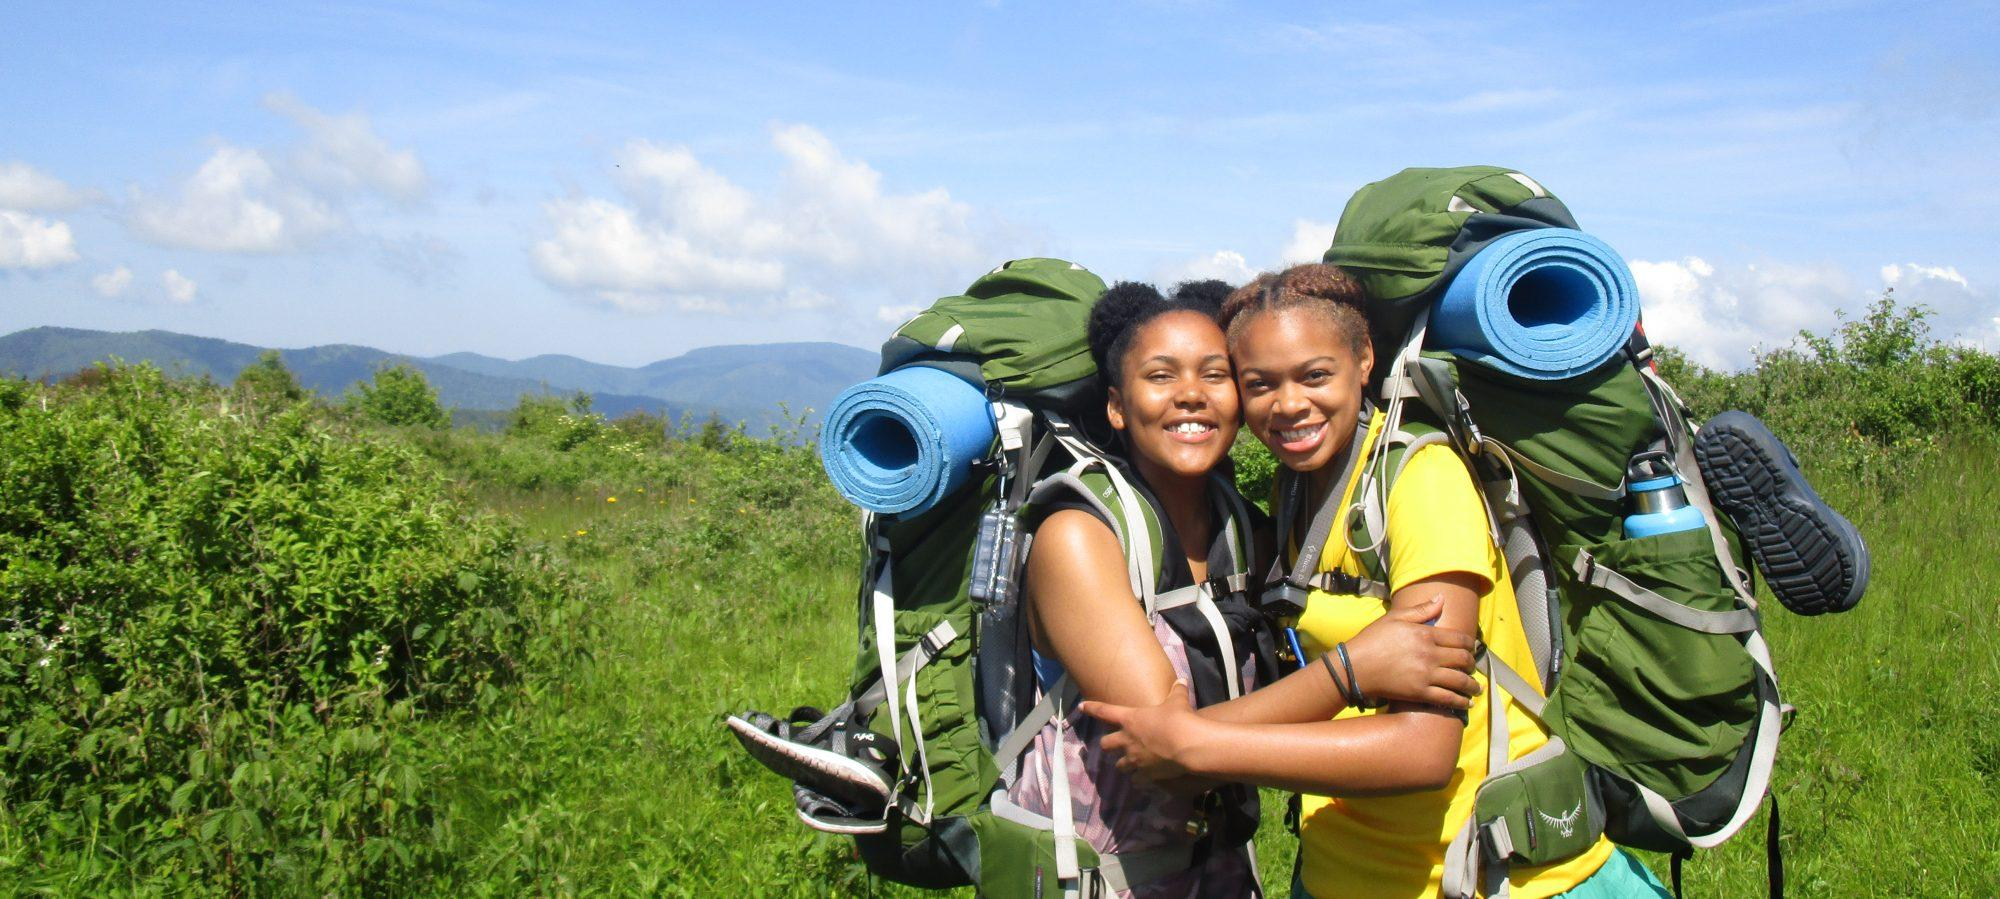 Two young women with backpacks smiling